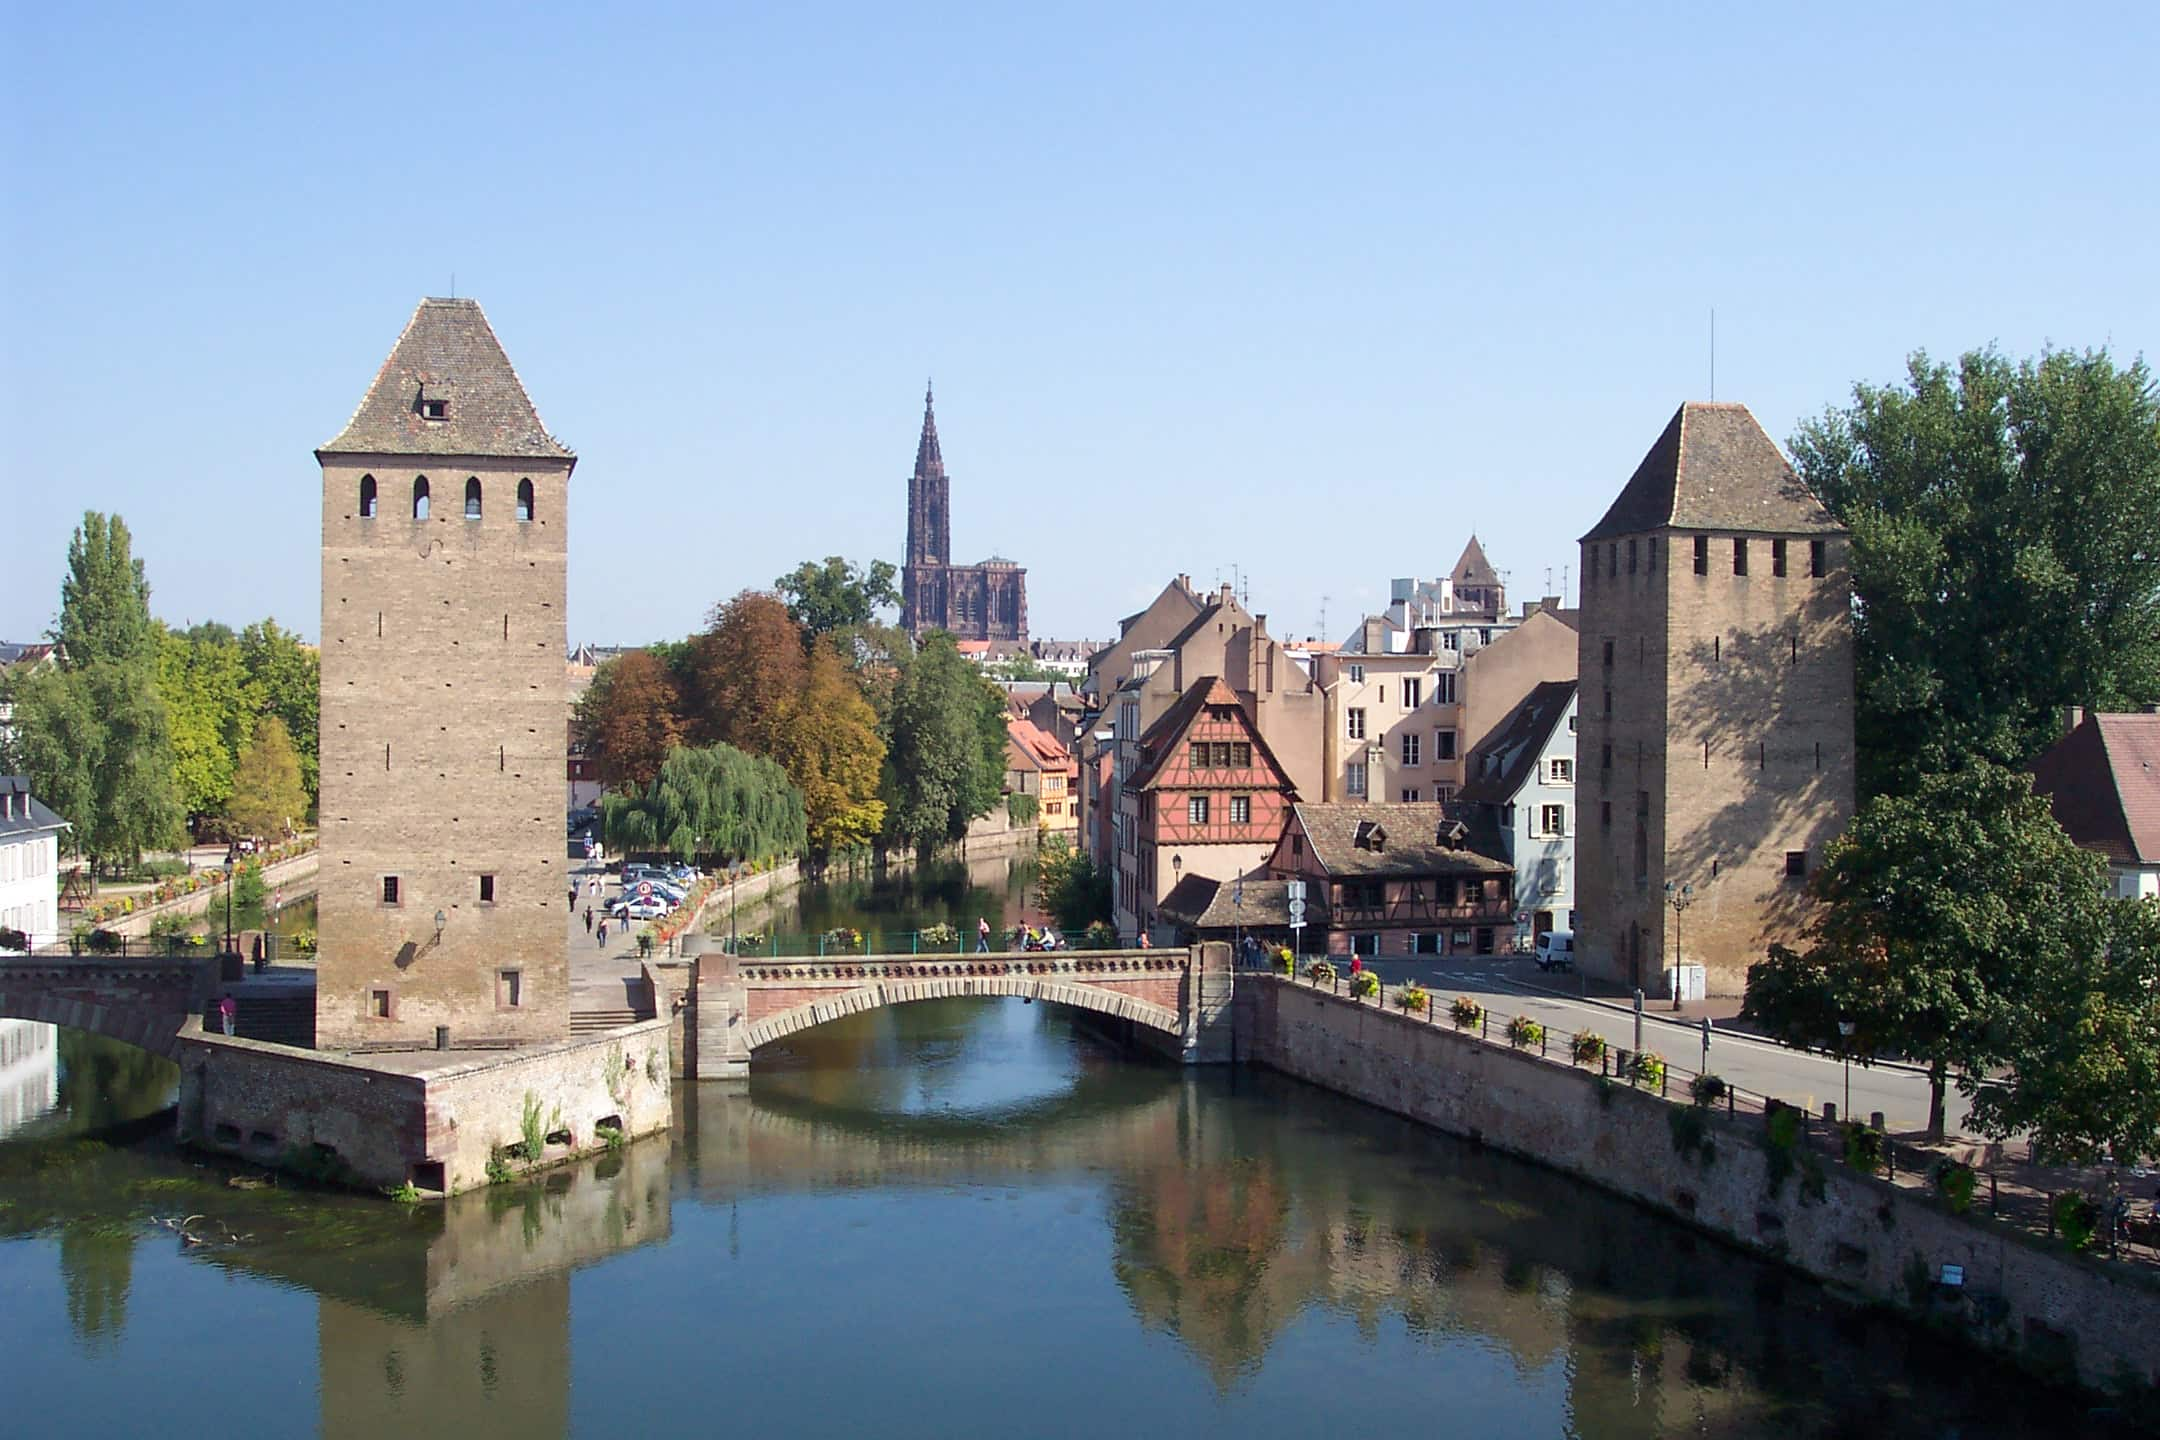 Two_towers_of_Ponts_Couverts_and_Strasbourg_Cathedral_in_the_distance_Kilinc avocat lawyer